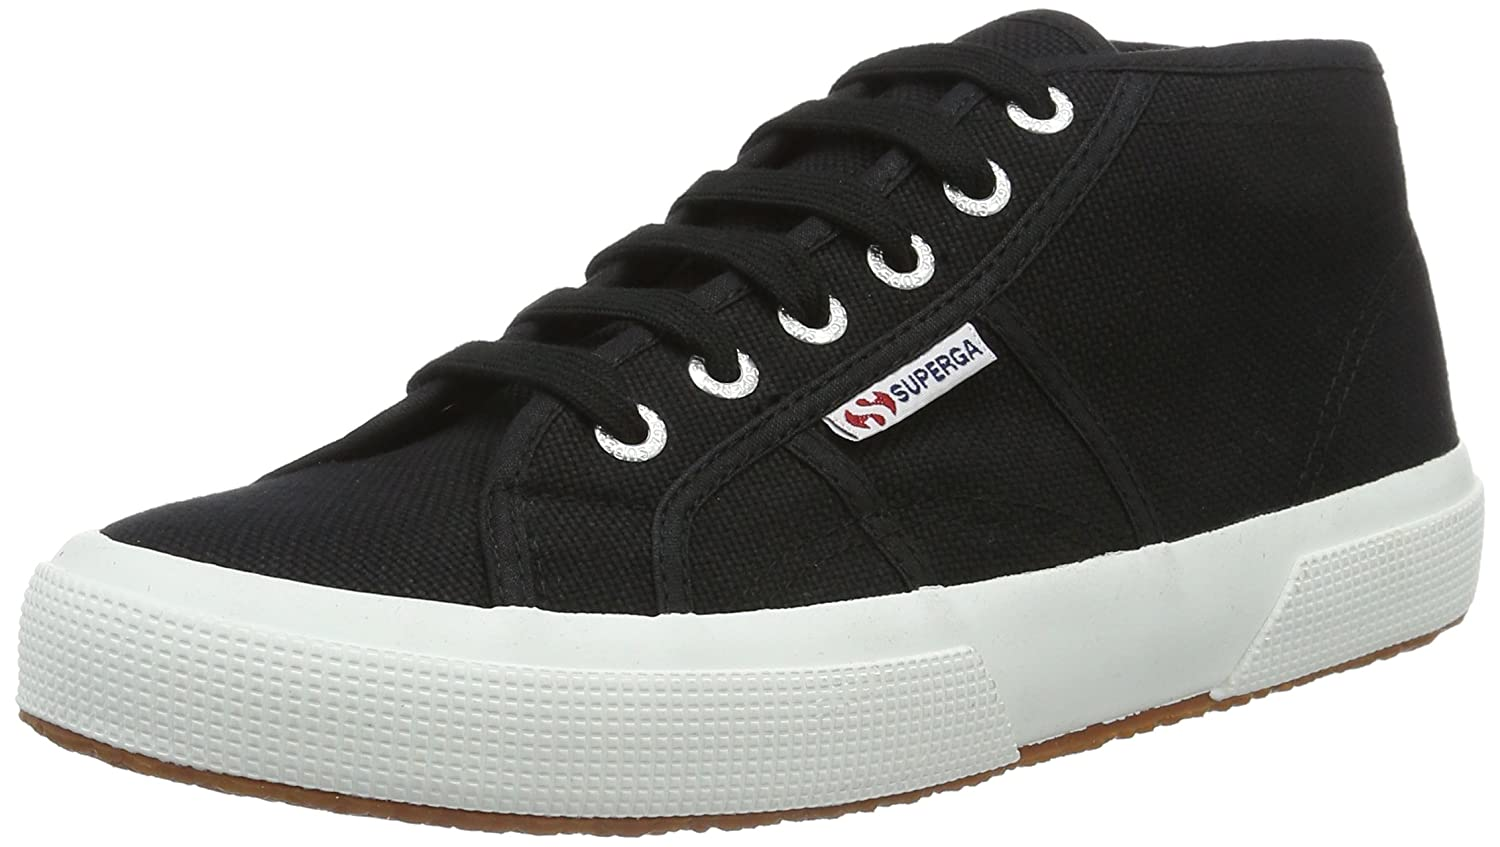 Superga 2754 COTU, Zapatillas Altas Unisex Adulto 35.5 EU|Schwarz (Black-white)